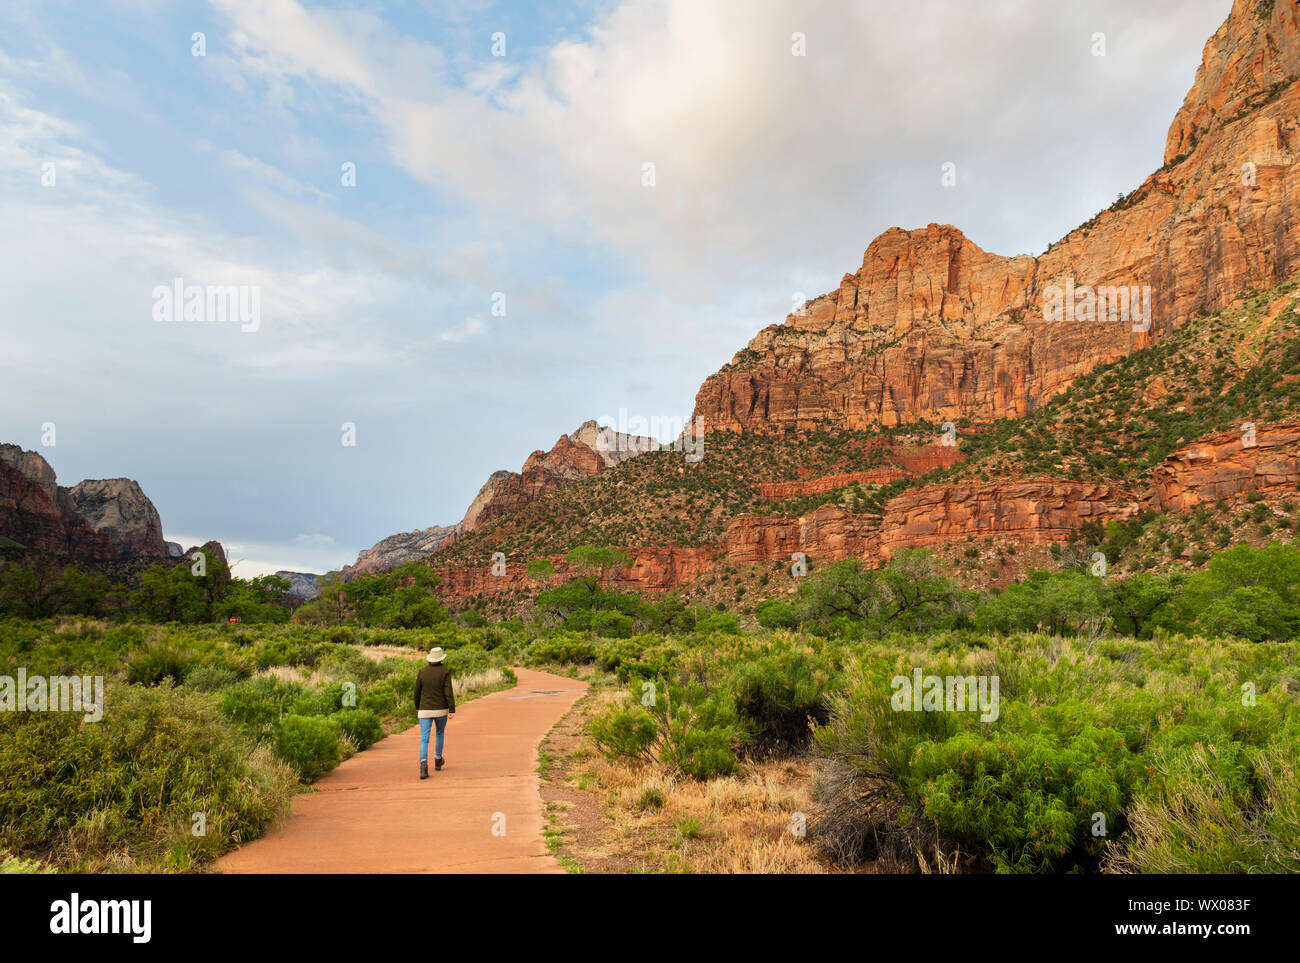 Hiking the Pa'rus trail, Zion National Park, Utah, United States of America, North America Stock Photo